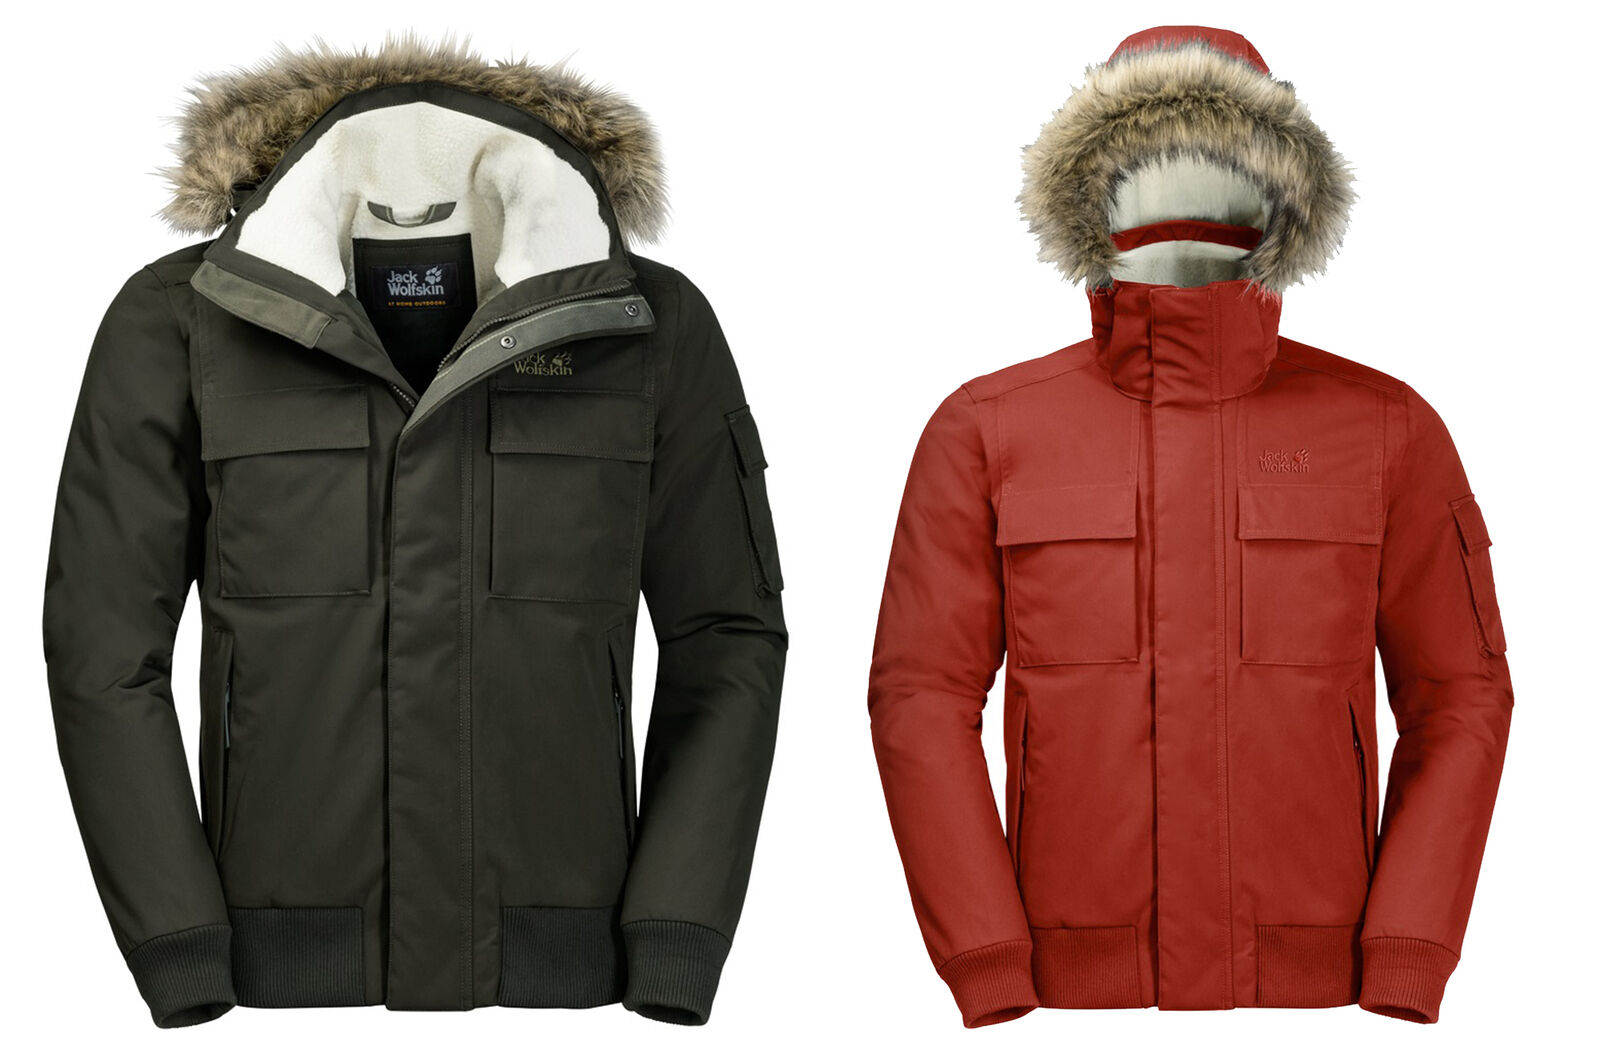 Jack Wolfskin Pavia POINT Giacca all'aperto Giacca Invernale